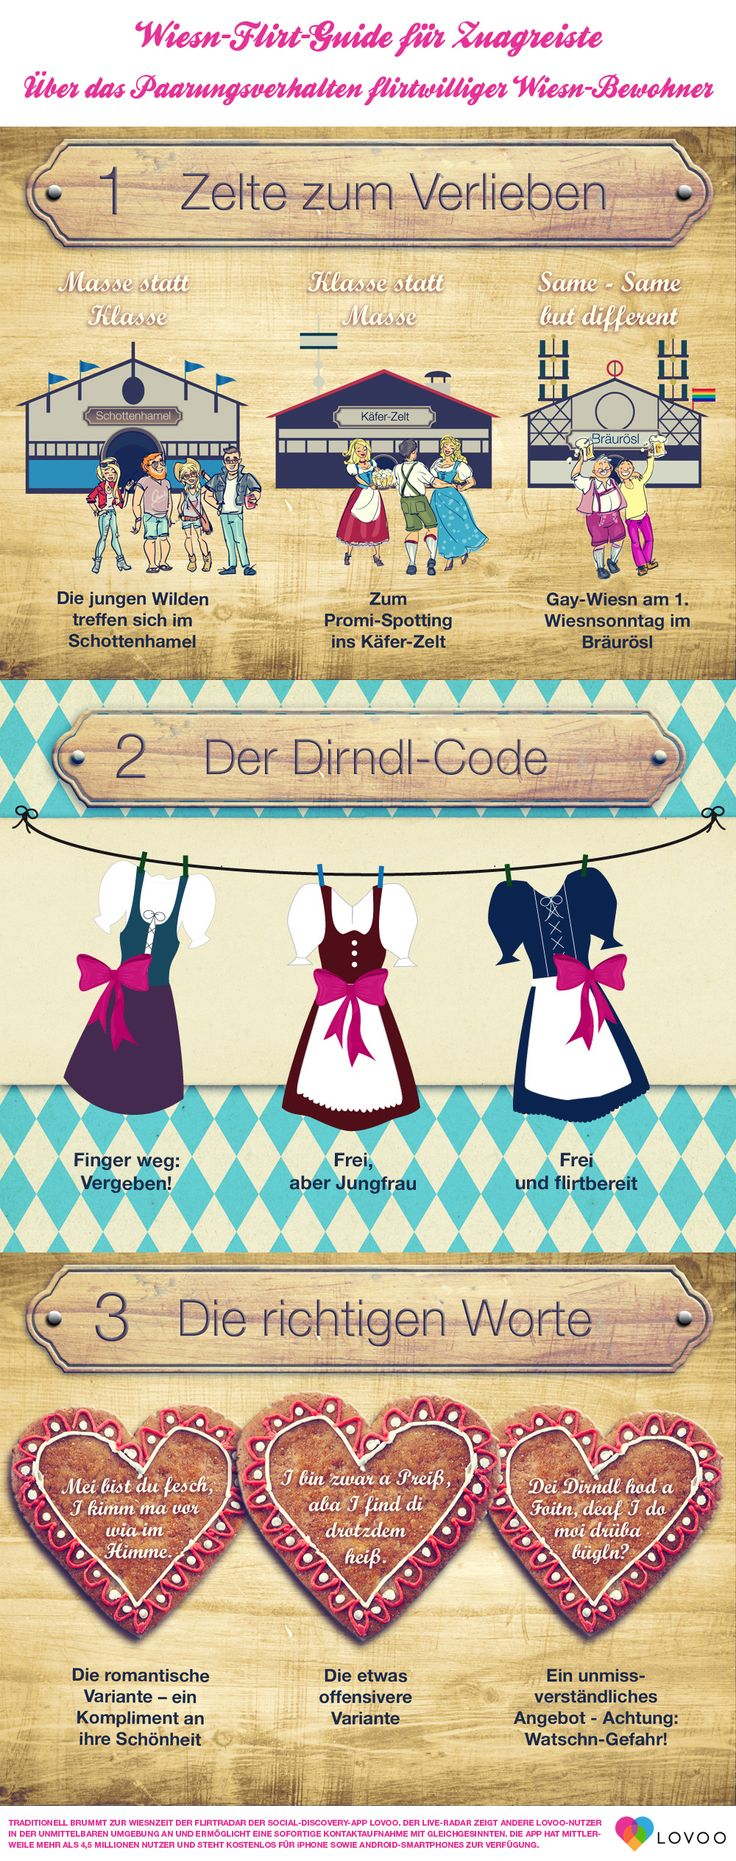 1000+ images about Bavaria Inspired Fashion on Pinterest.